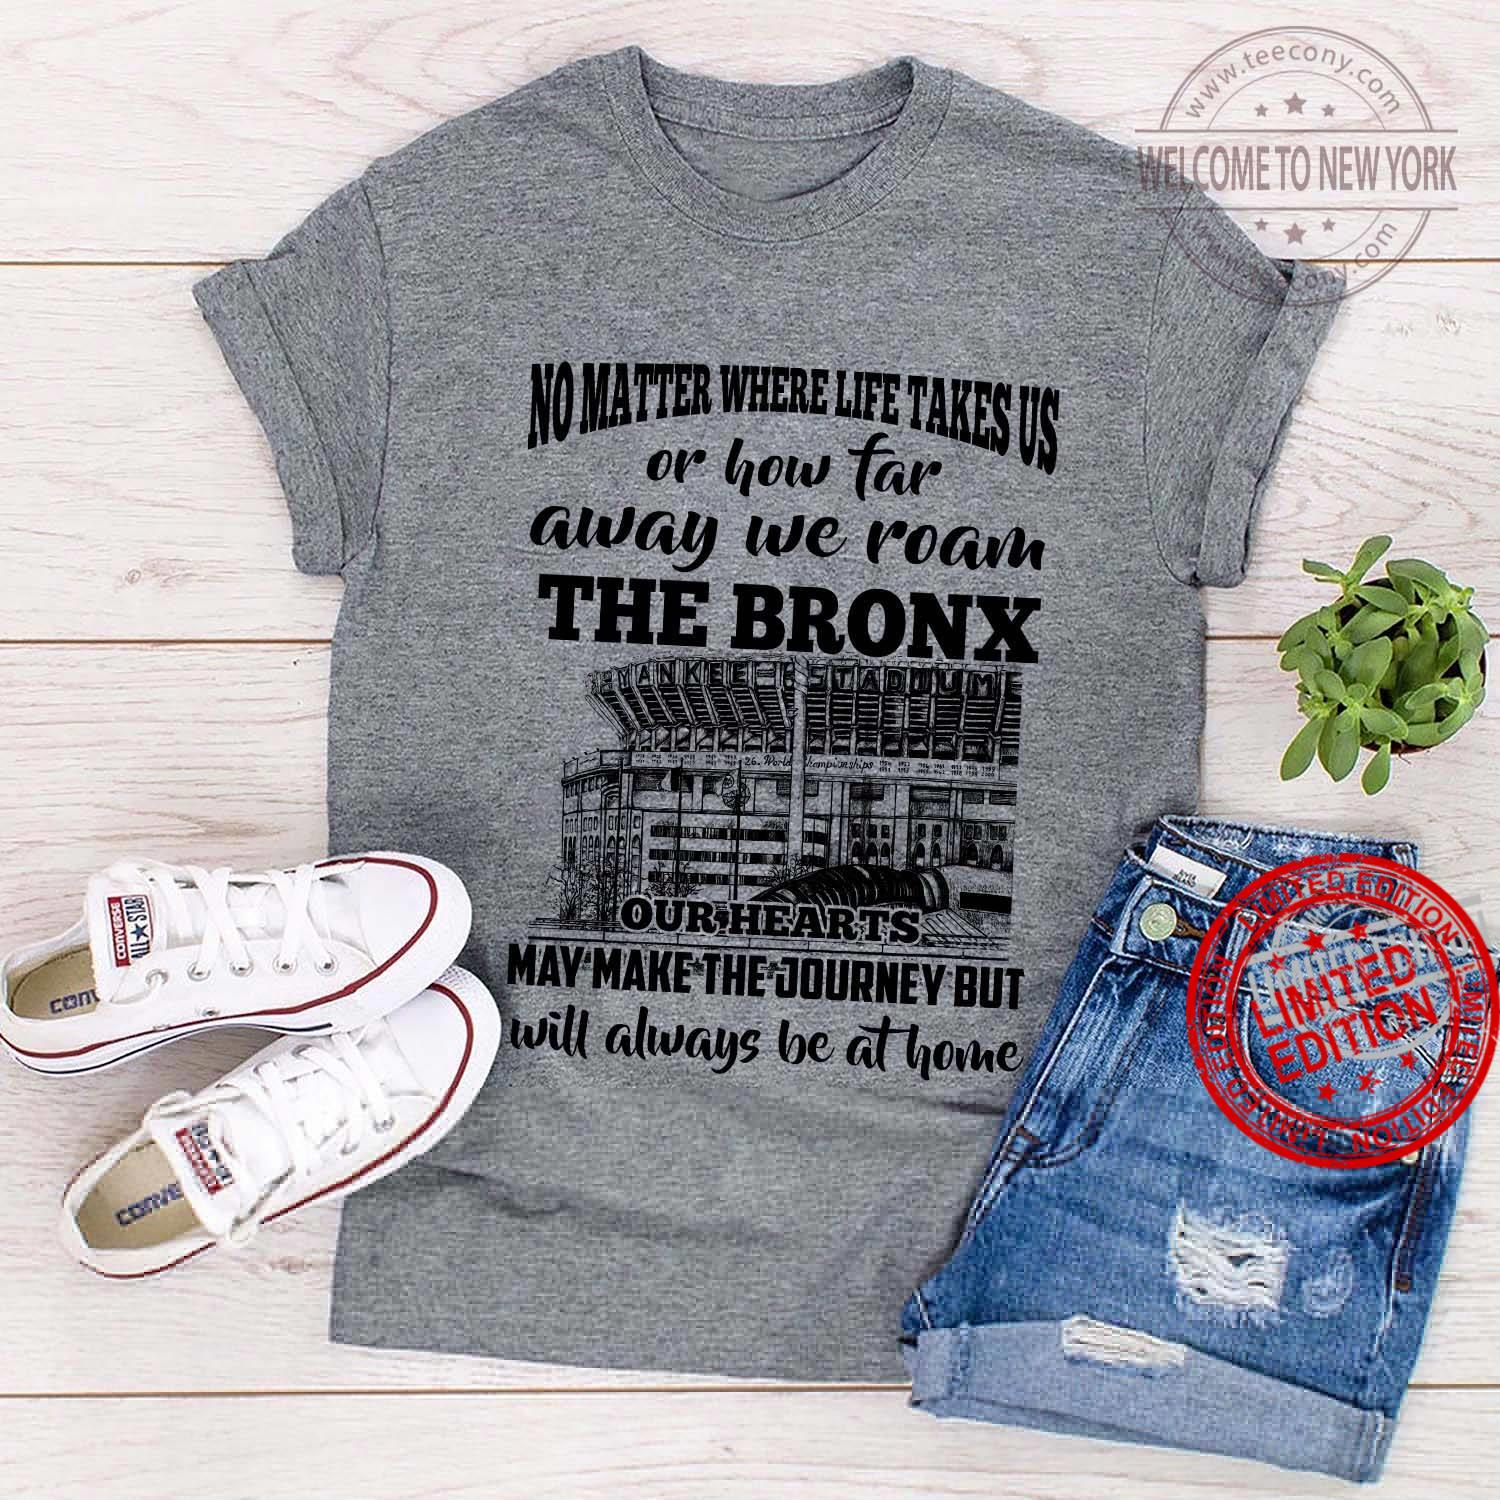 No Matter Where Life Takes Us Or How Far Away We Roam The Bronx Our Hearts May Make The Journey But Will Always Be At Home Shirt